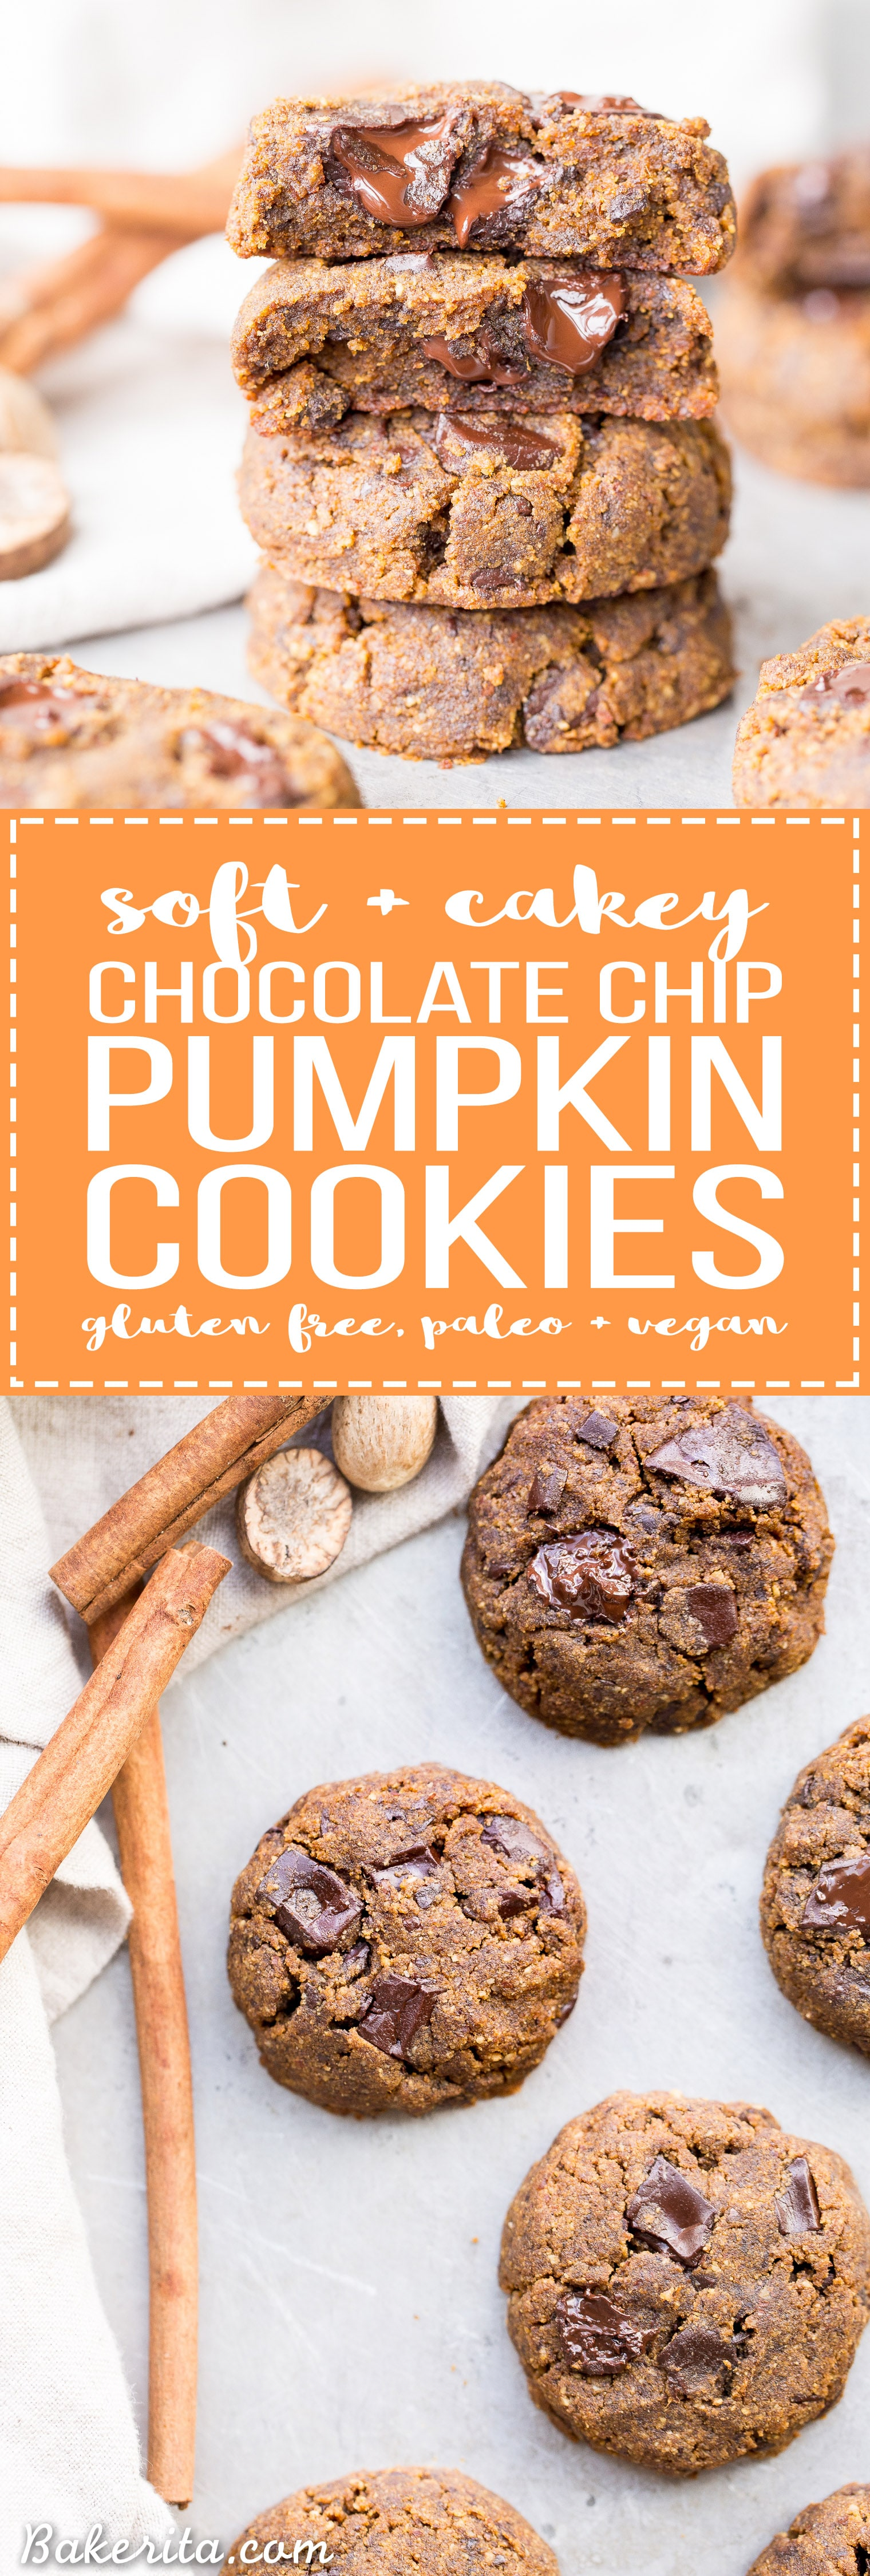 These Soft Chocolate Chip Pumpkin Cookies are a cakey and delicious spiced cookie that's loaded with chocolate! If you like softer cookies, you'll adore these gluten-free, paleo + vegan pumpkin cookies.